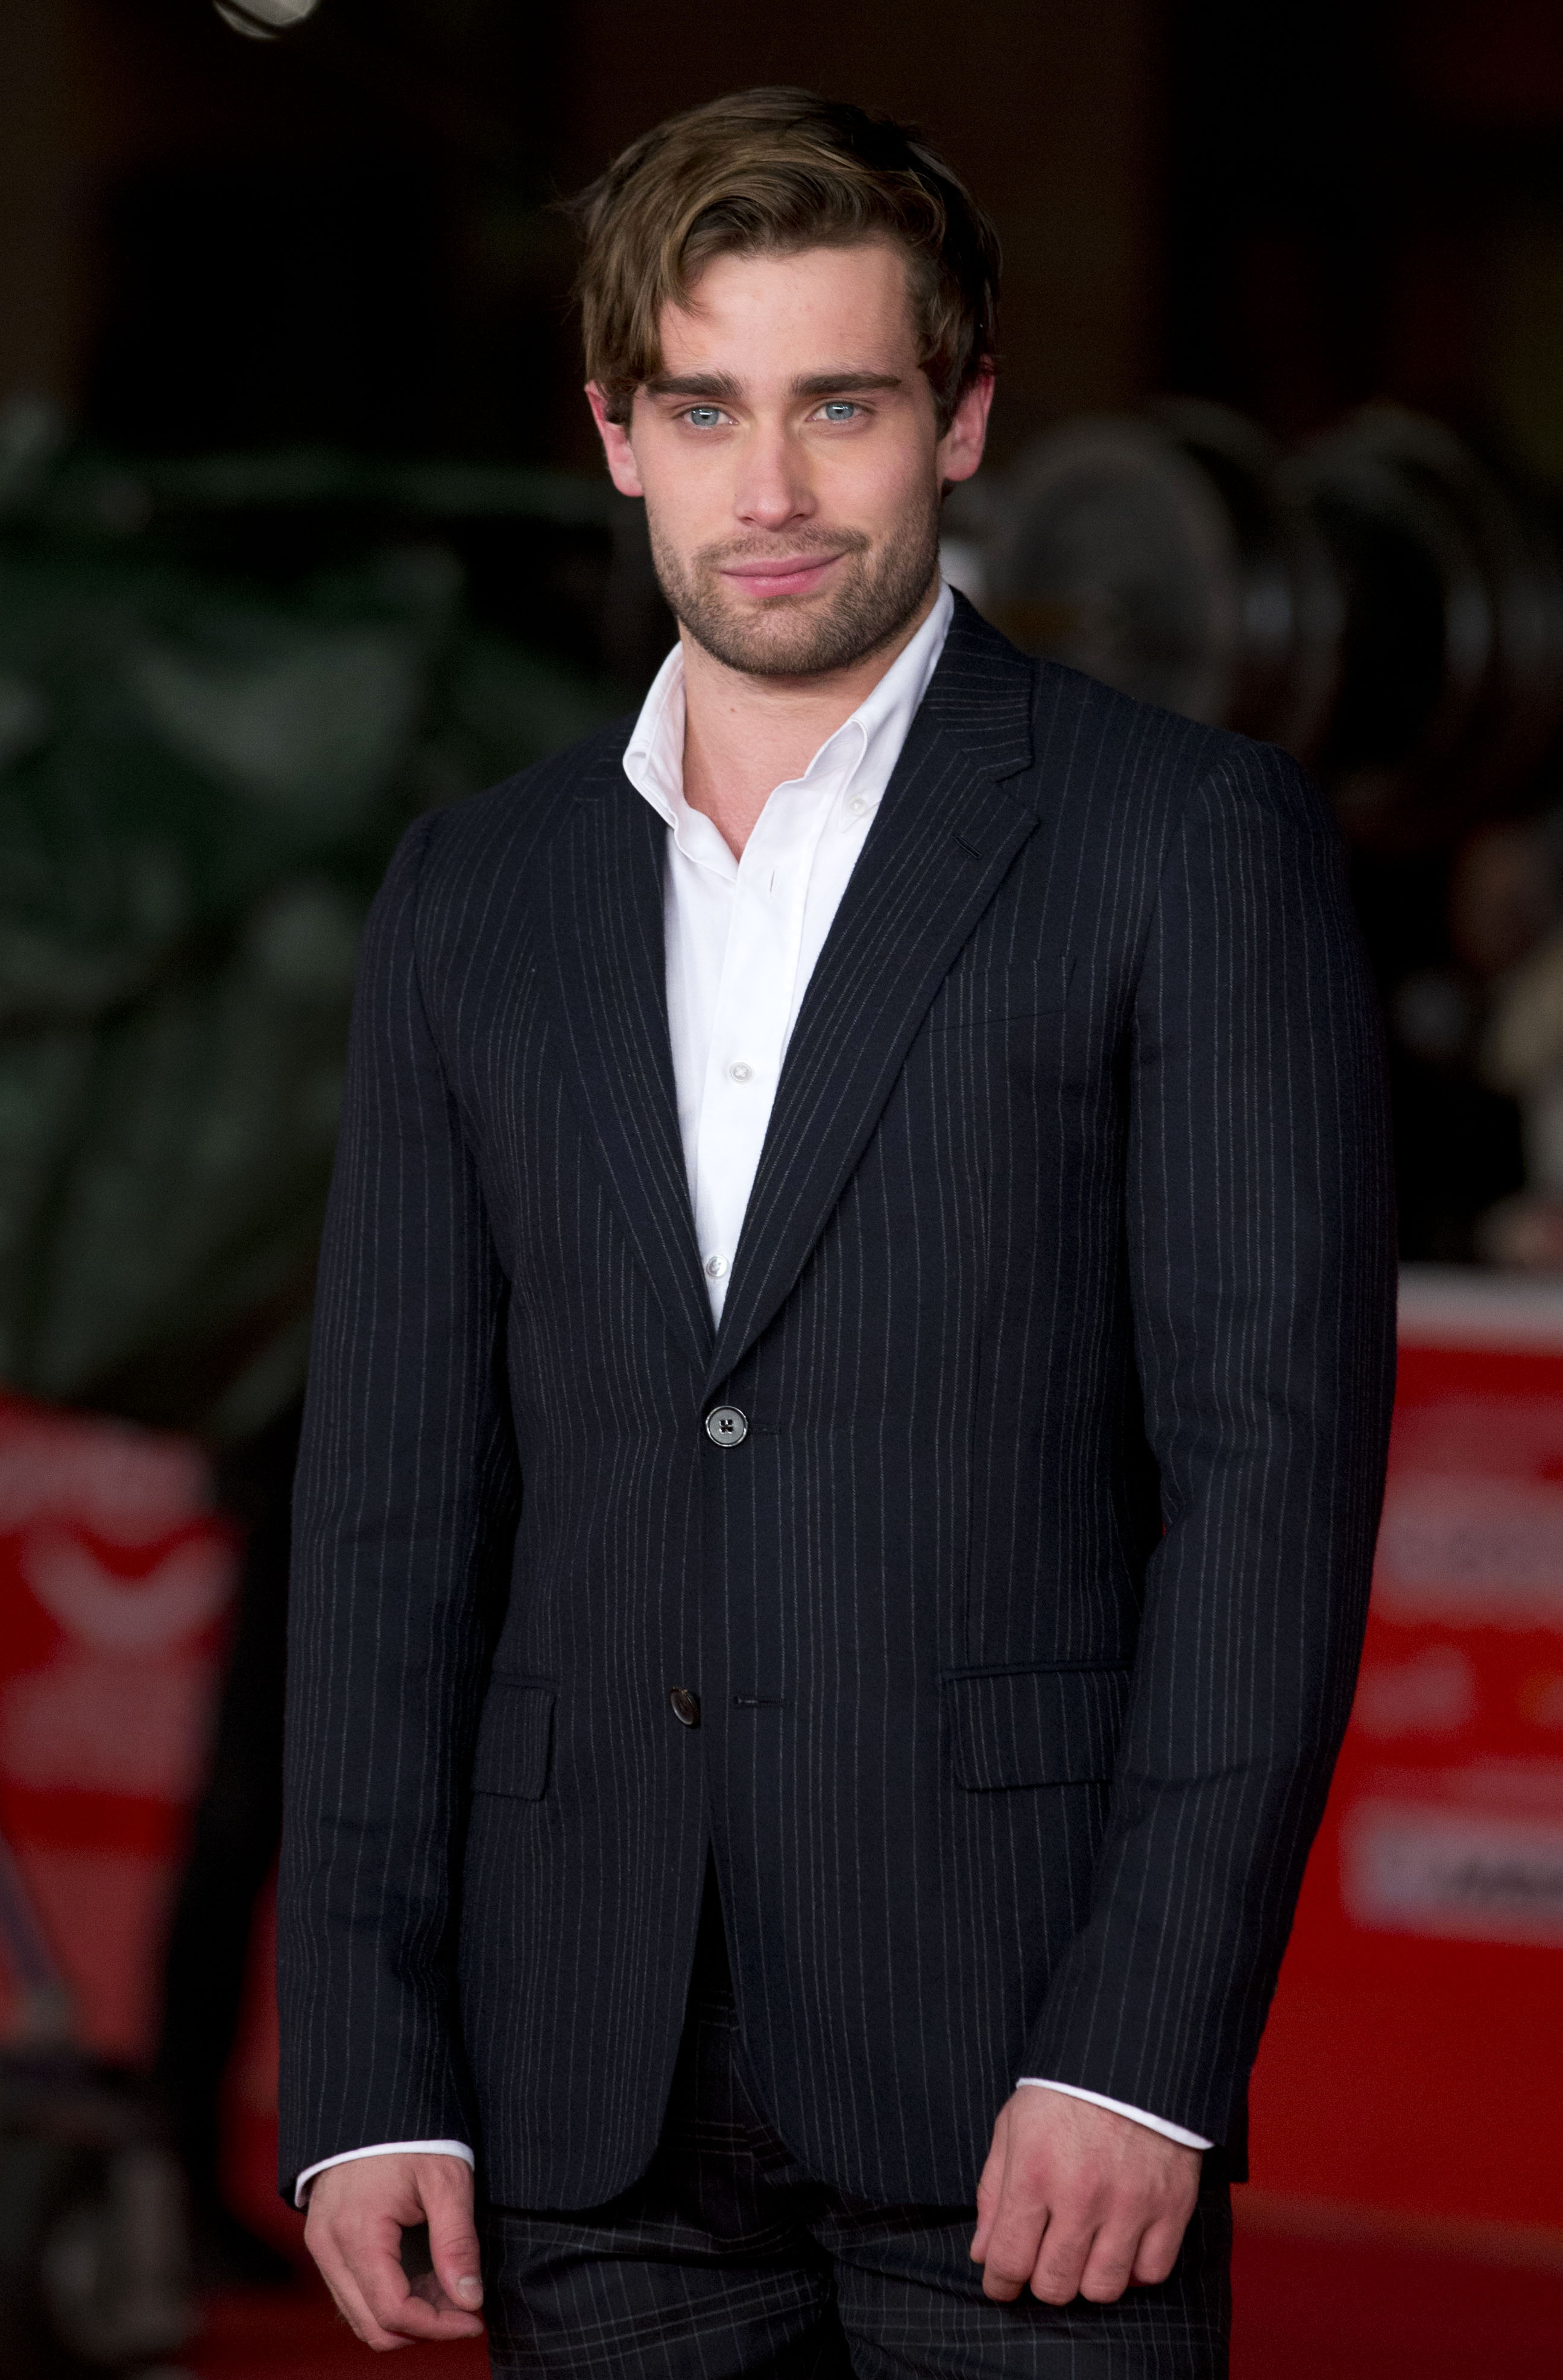 Actor Christian Cooke poses during the red carpet of the movie 'Romeo and Juliet', at the 8th edition of the Rome International Film Festival, in Rome, Monday, Nov. 11, 2013. (AP Photo/Andrew Medichini)